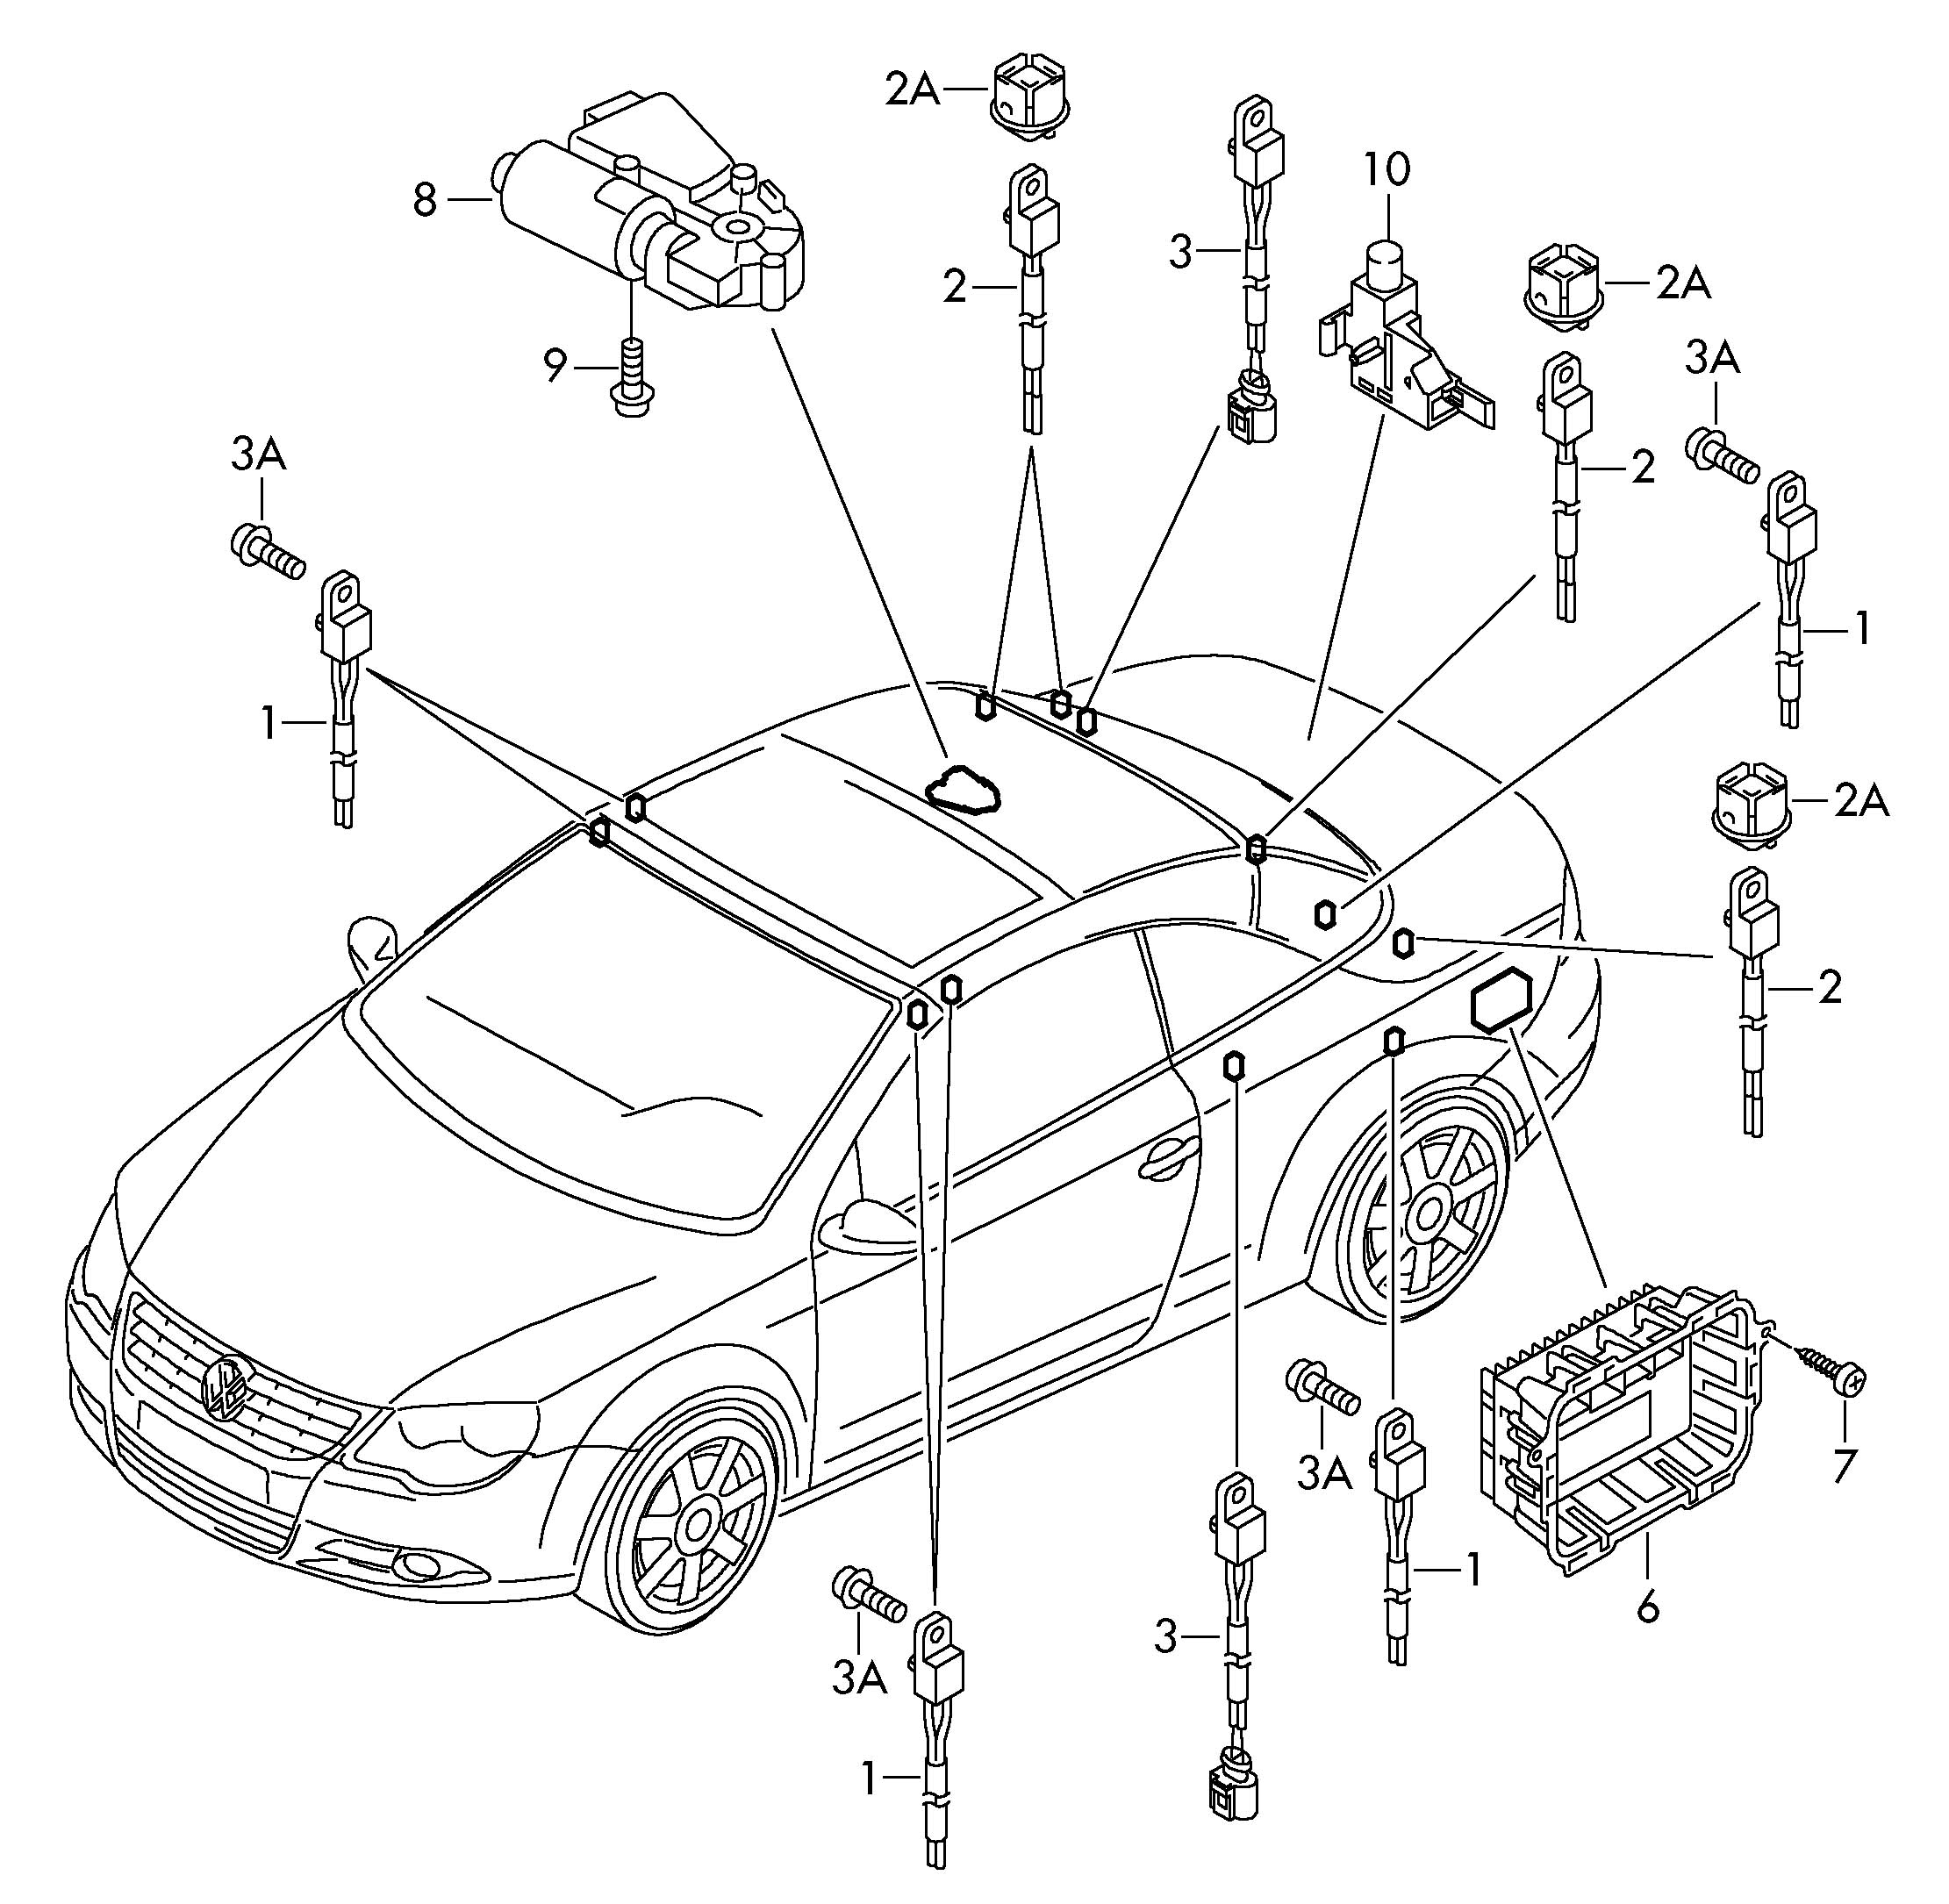 Volkswagen Eos Control Unit And Sensors For Cabriolet Roof